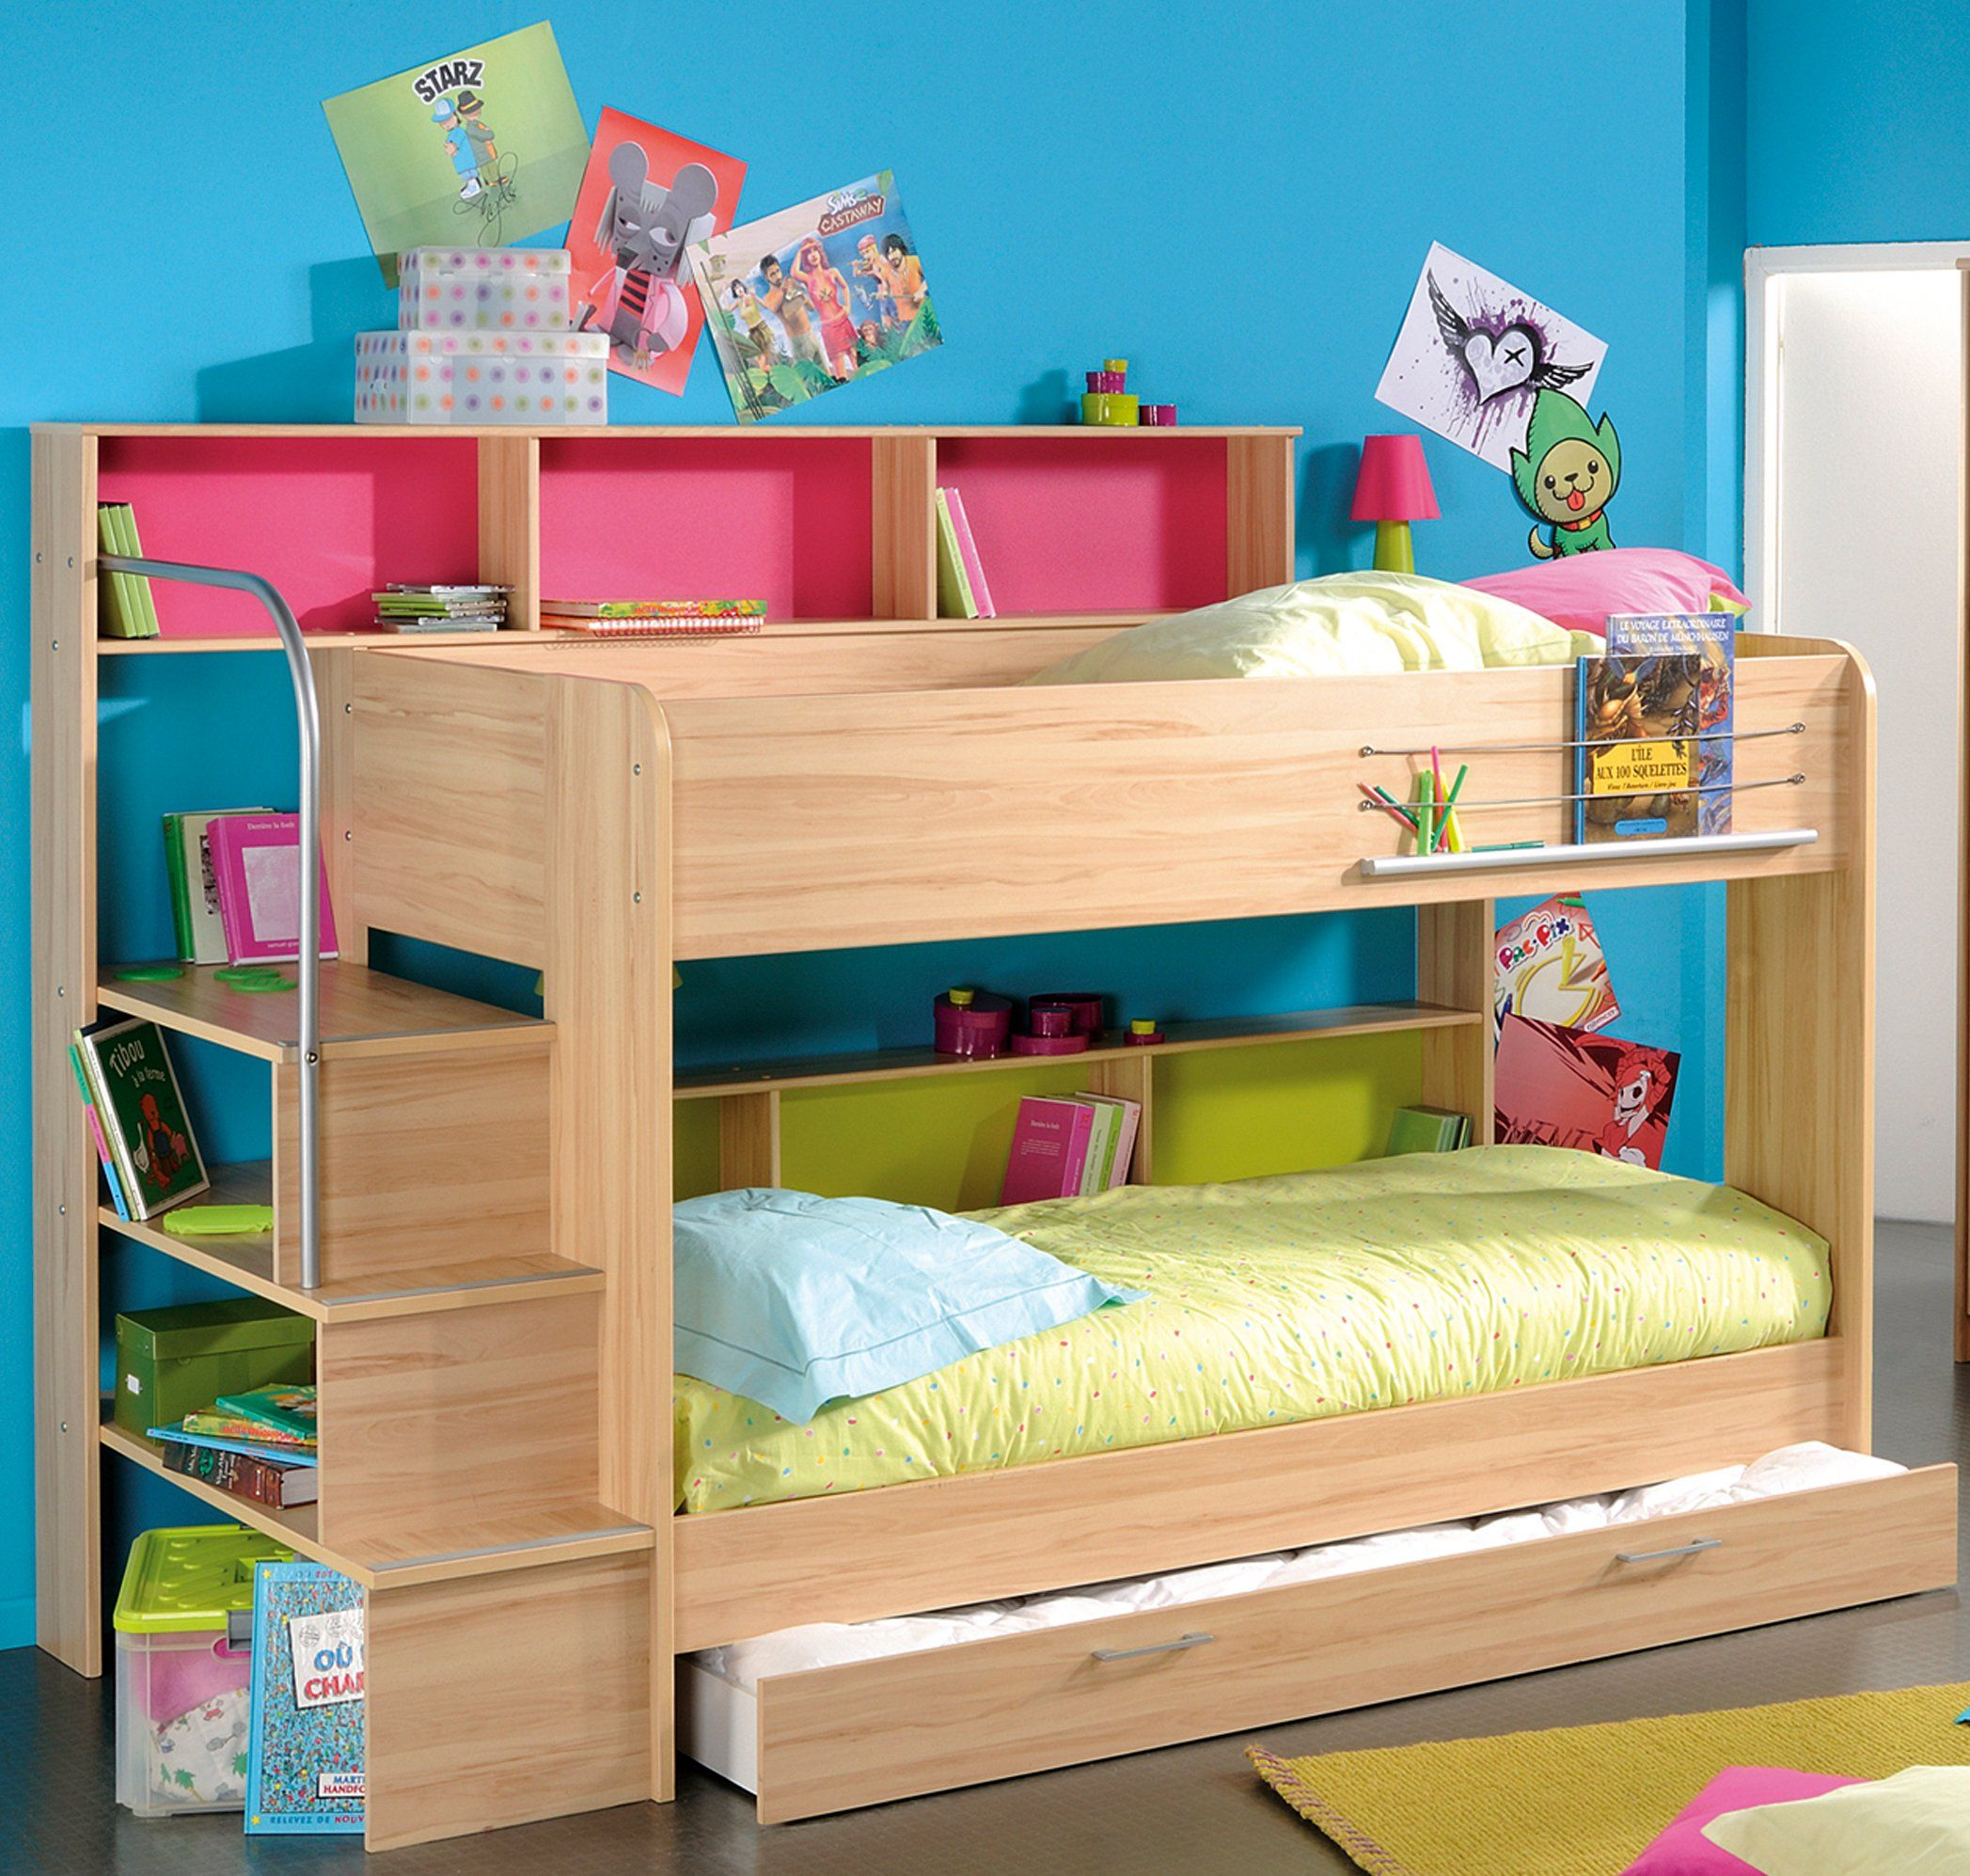 Some Materials Used For Bunk Beds In 2020